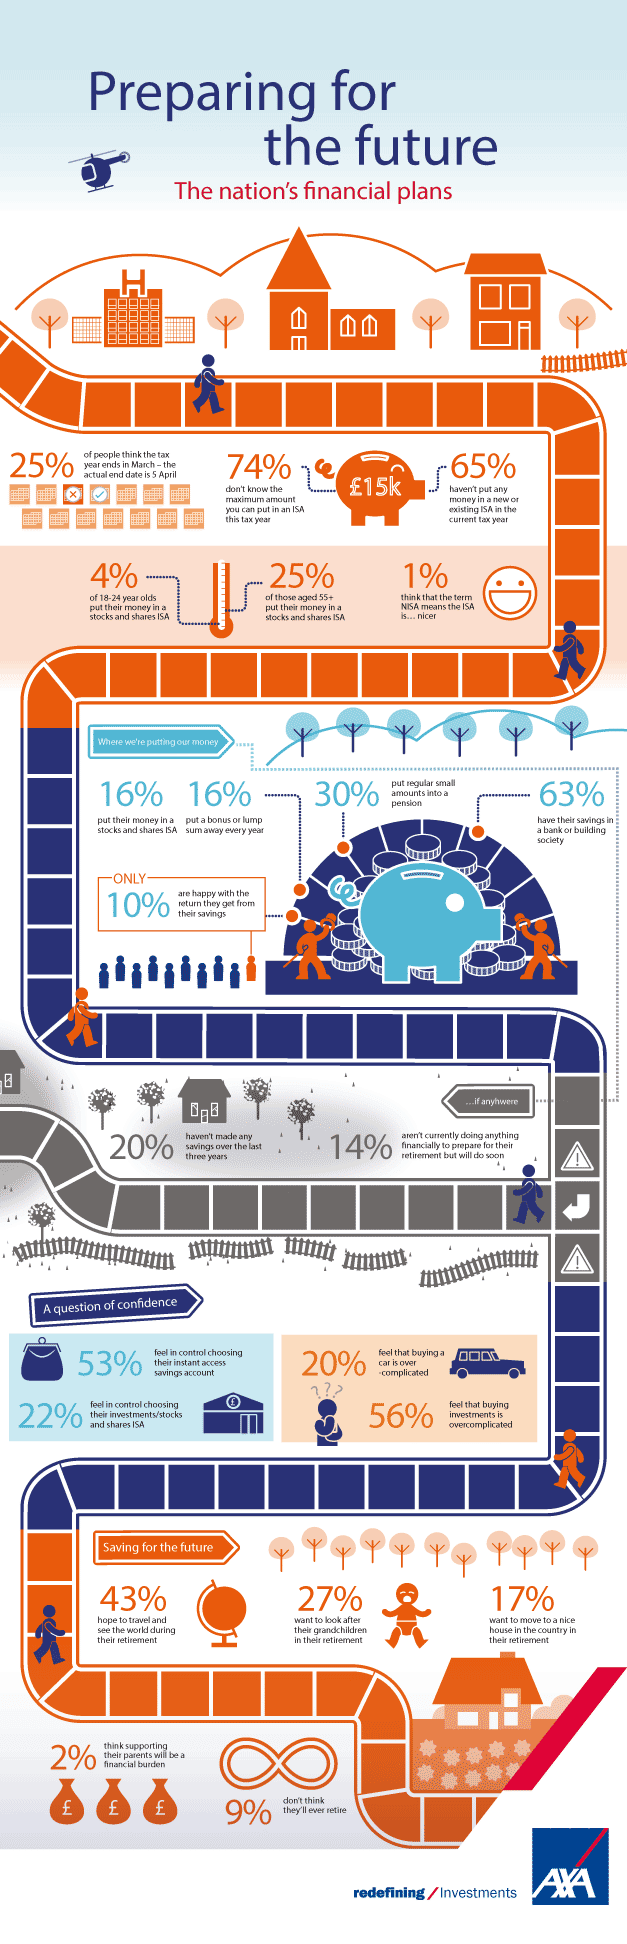 axa-self-investor-preparing-for-future-infographic-blog